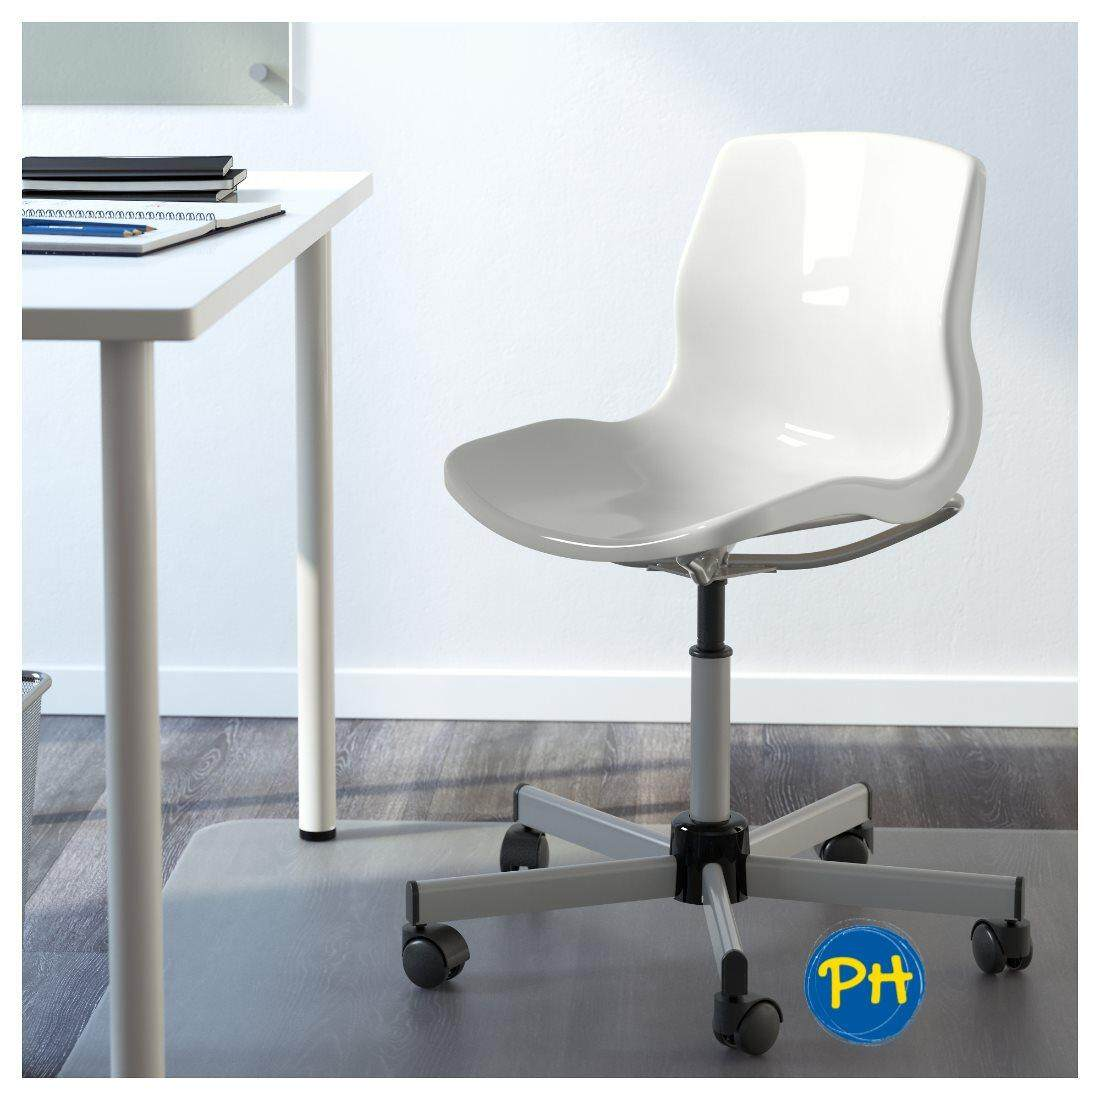 Ikea Snille 590 462 61 Swivel Chair White Plastic Office Computer Chair